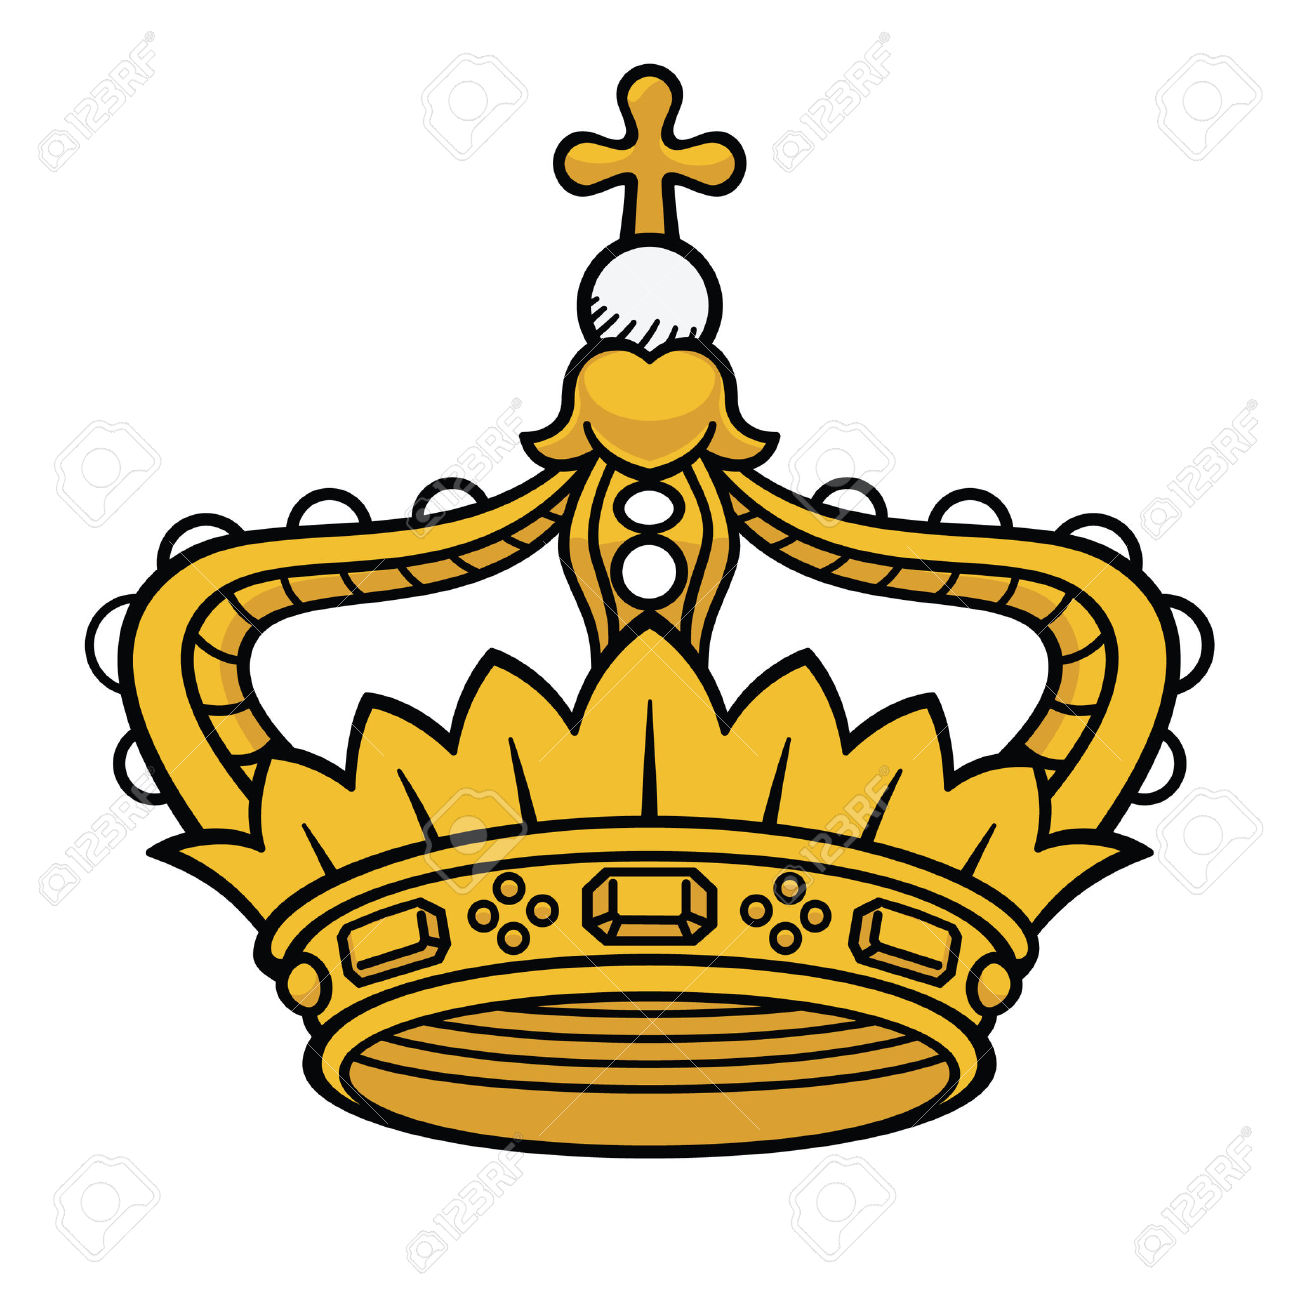 1300x1300 Crown Clipart Medieval Crown